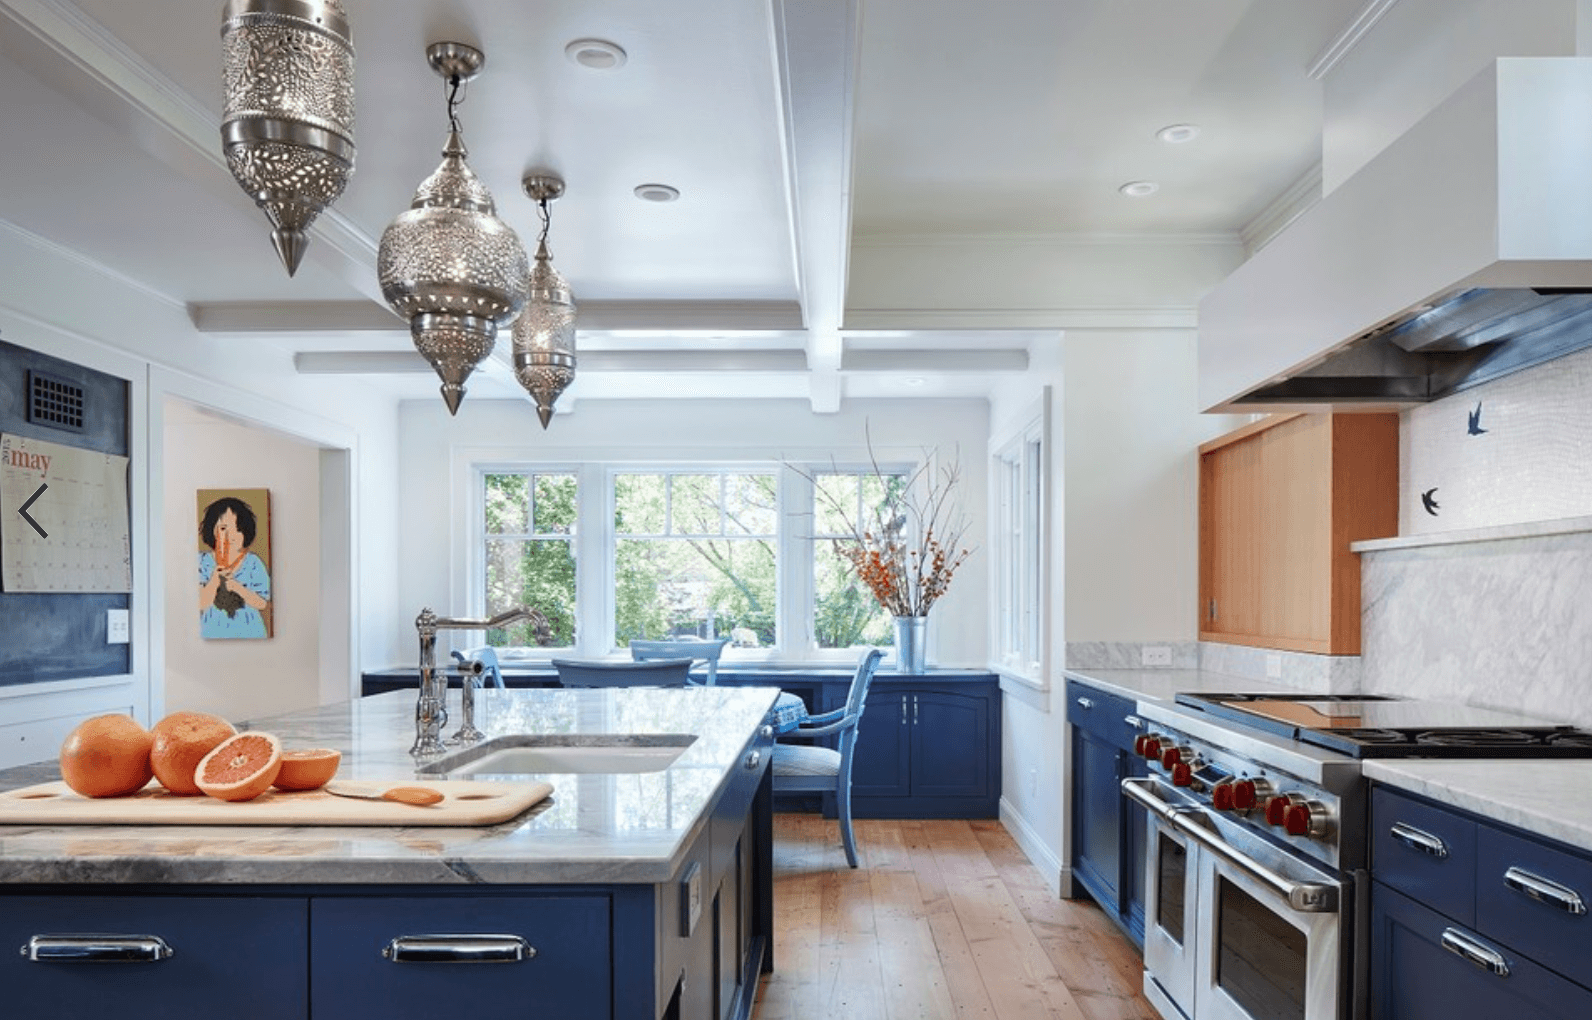 10 Outdated Kitchen Trends To Substitute In 2019